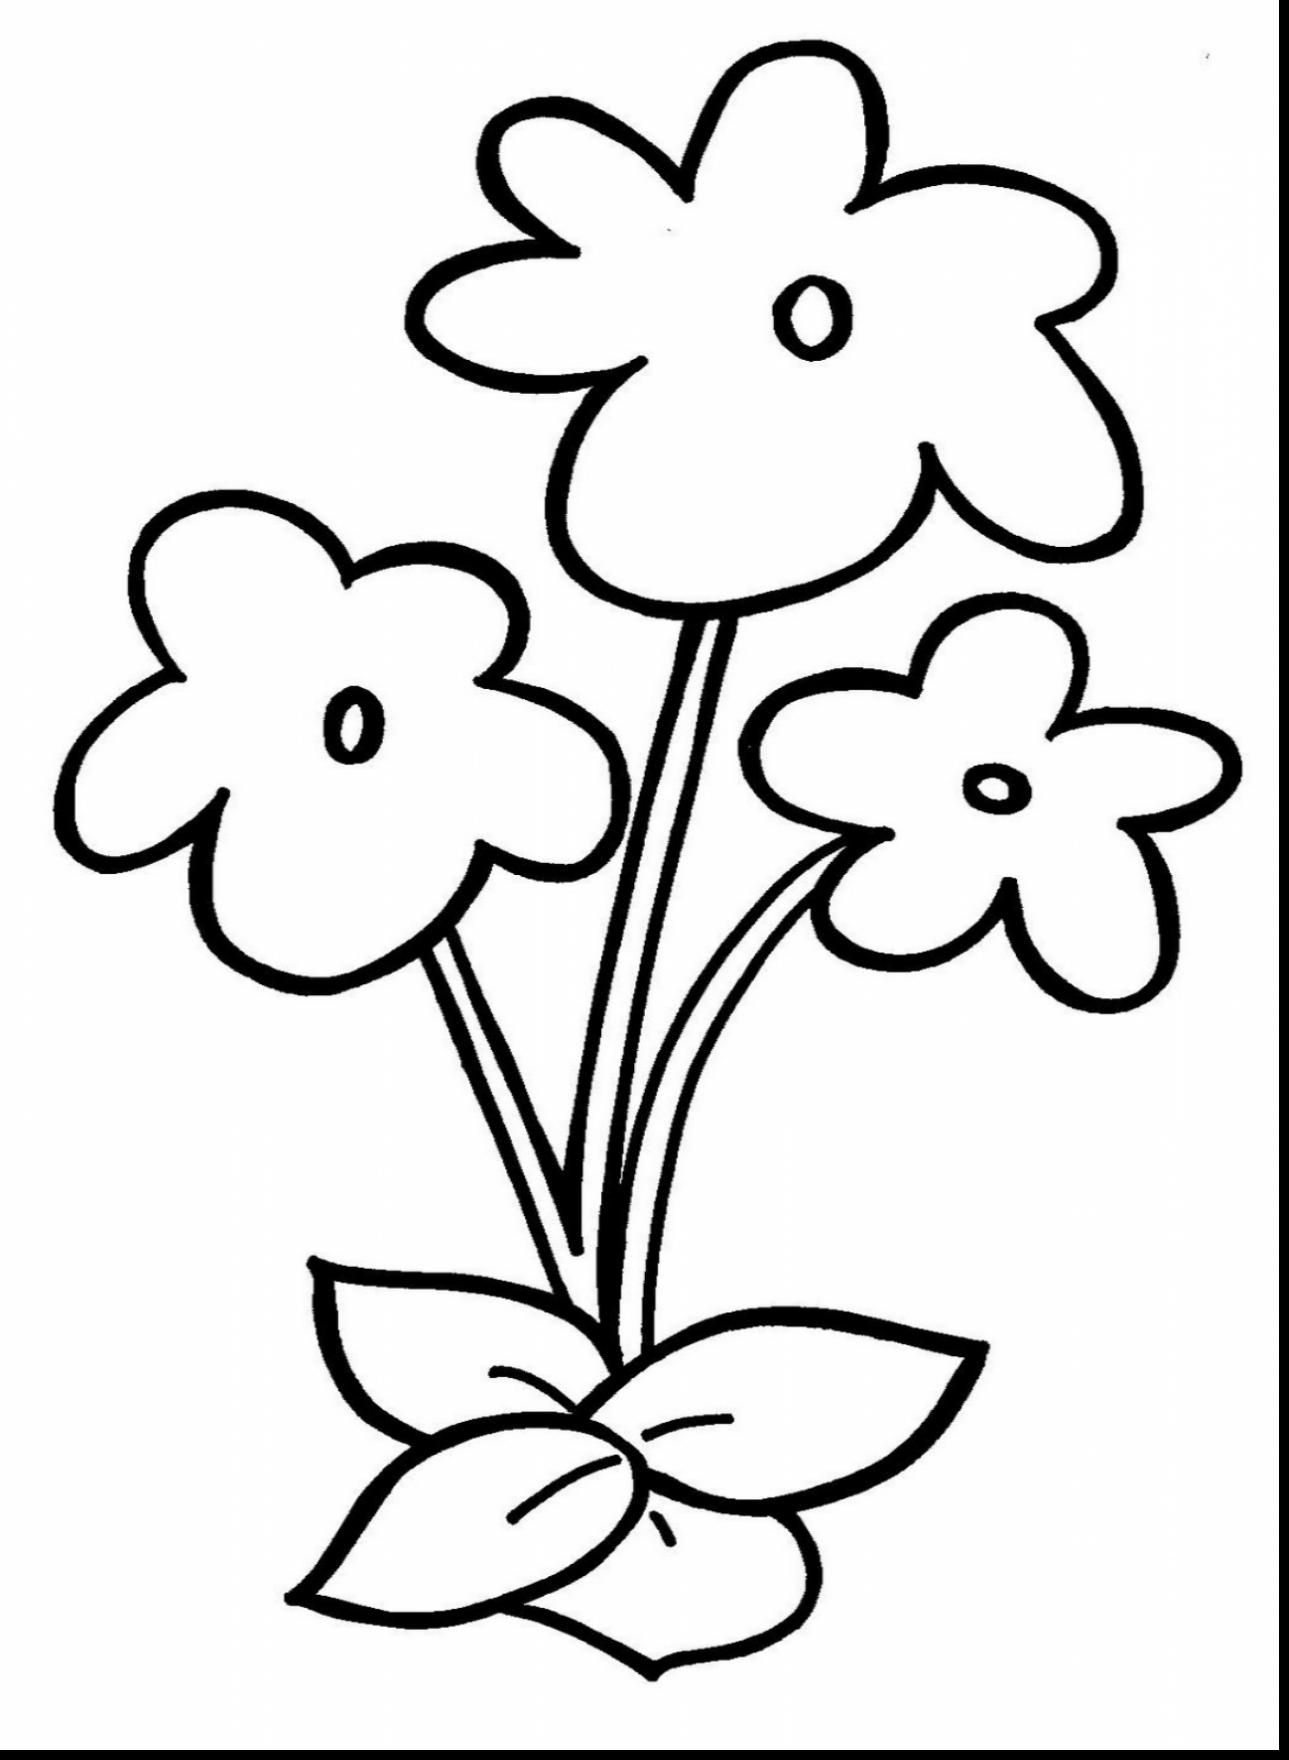 flower coloring book pages bouquet of flowers coloring pages for childrens printable coloring book pages flower